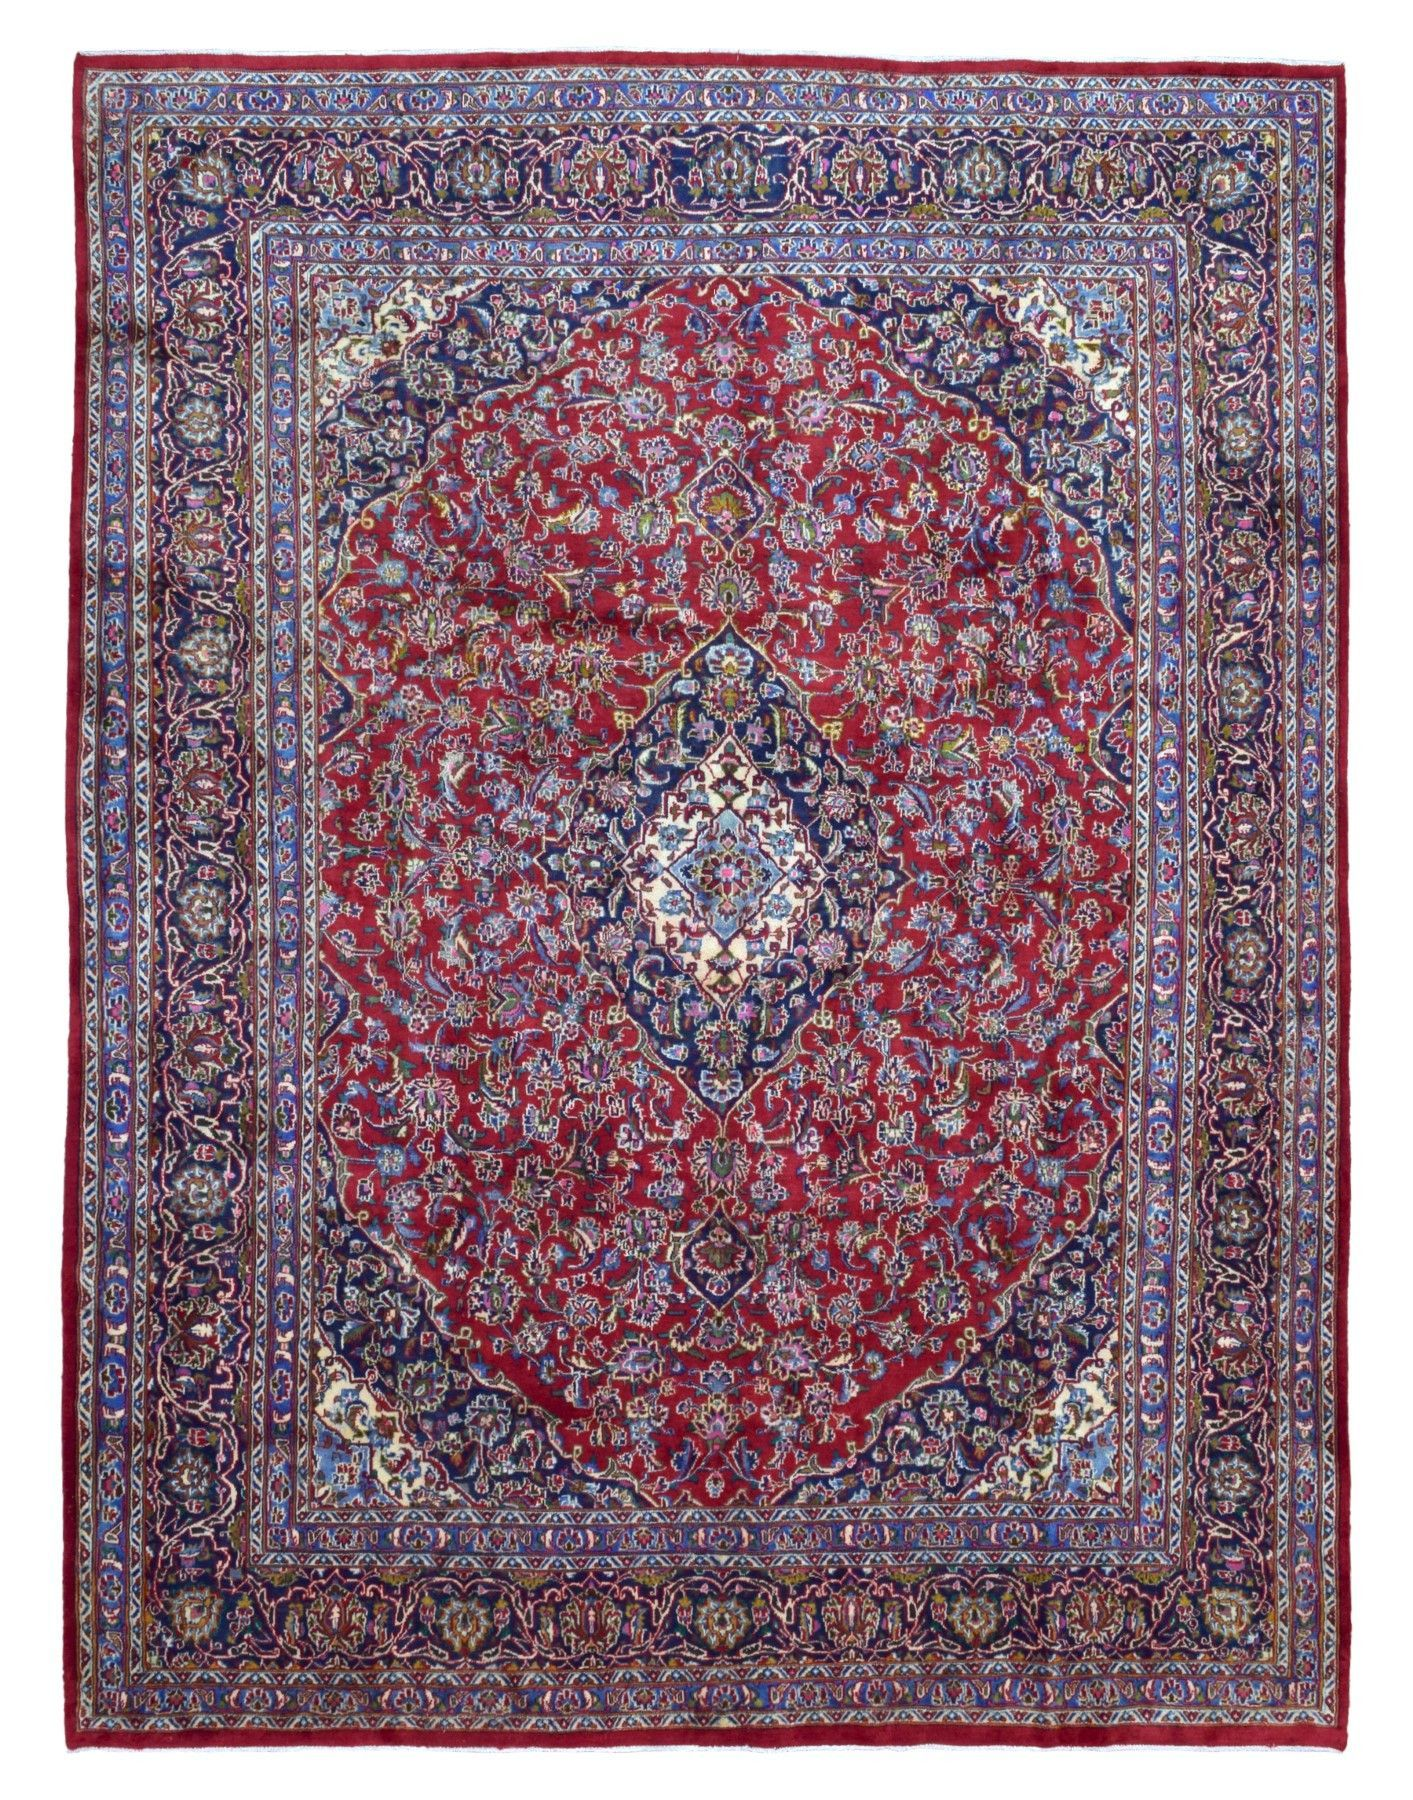 Semi Antique Persian Kashan Oriental Rug 9 4x12 2 Rugs Oriental Rug Rugs On Carpet